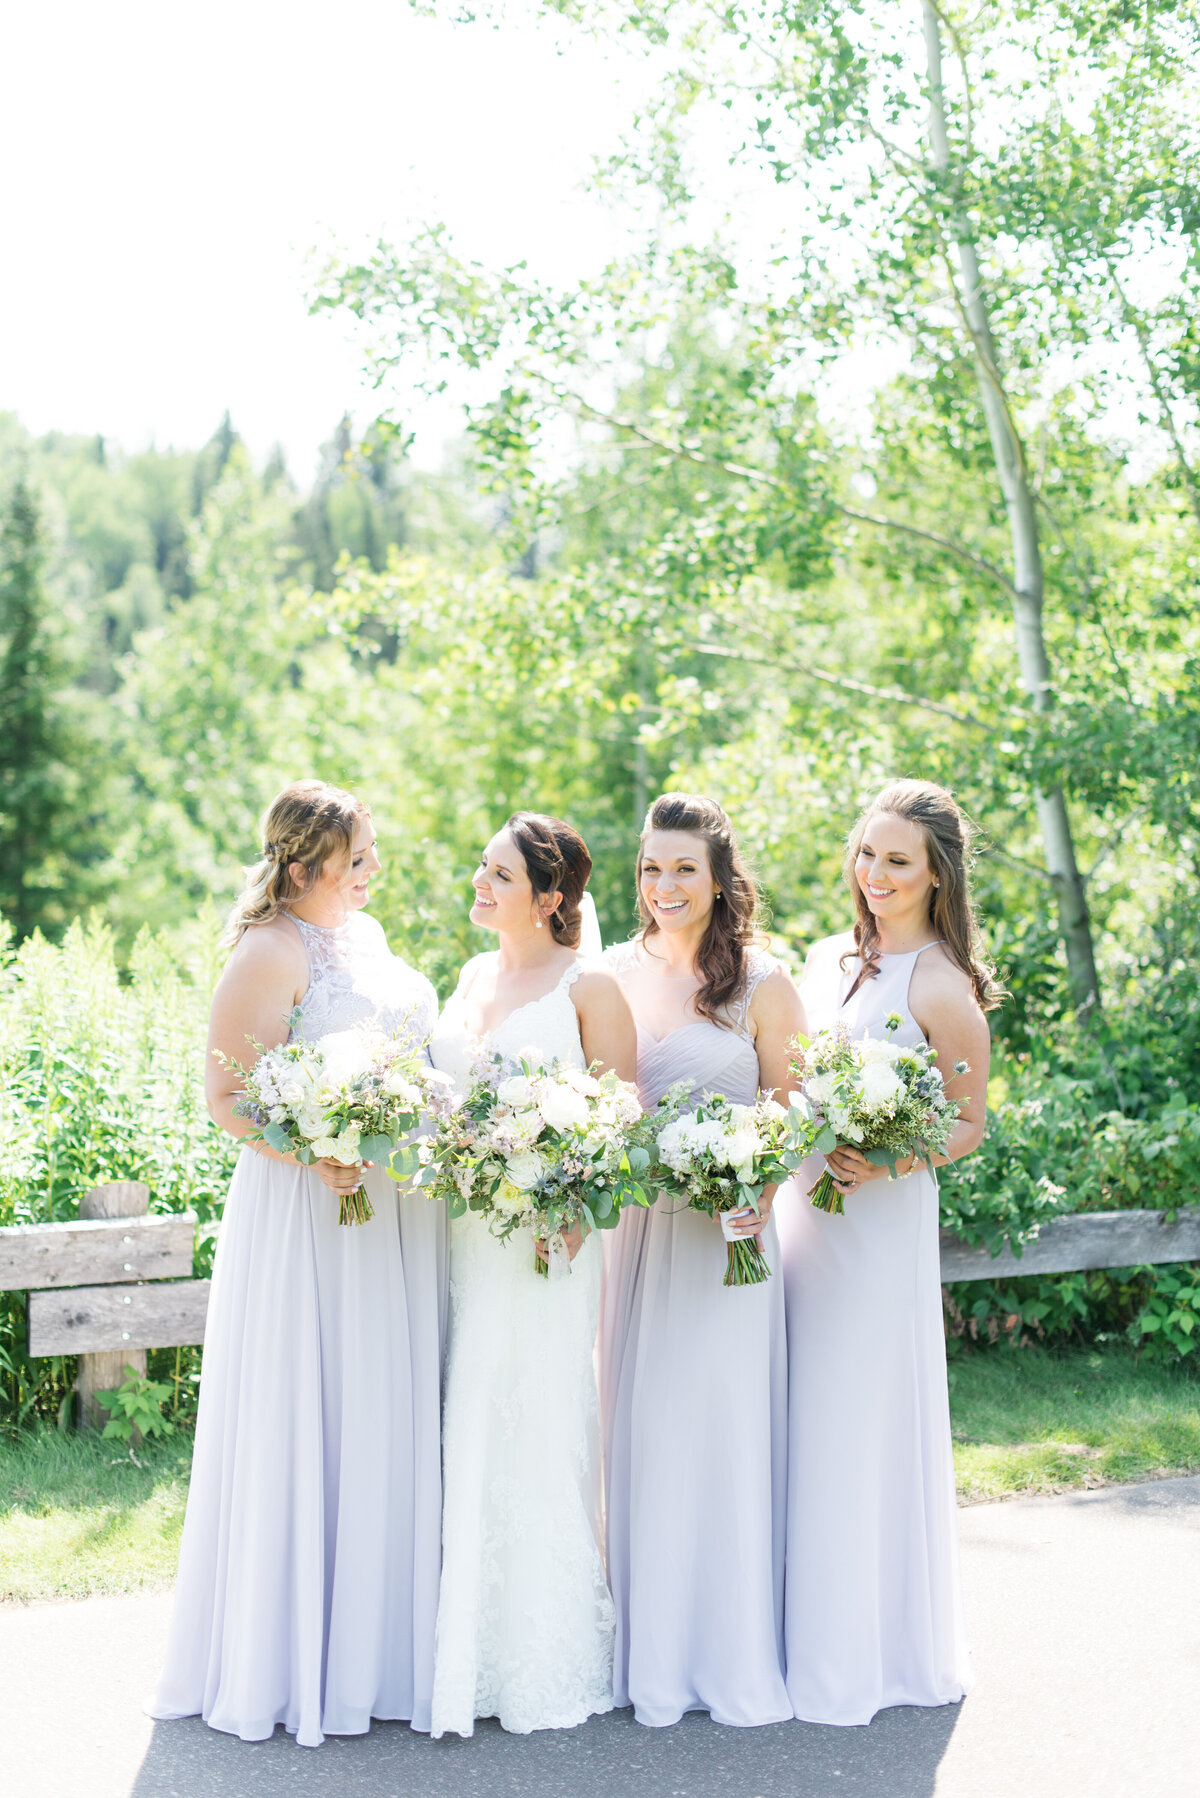 A bride and her bridesmaids giggle during their portraits at Whitewater Golf Club in Thunder Bay